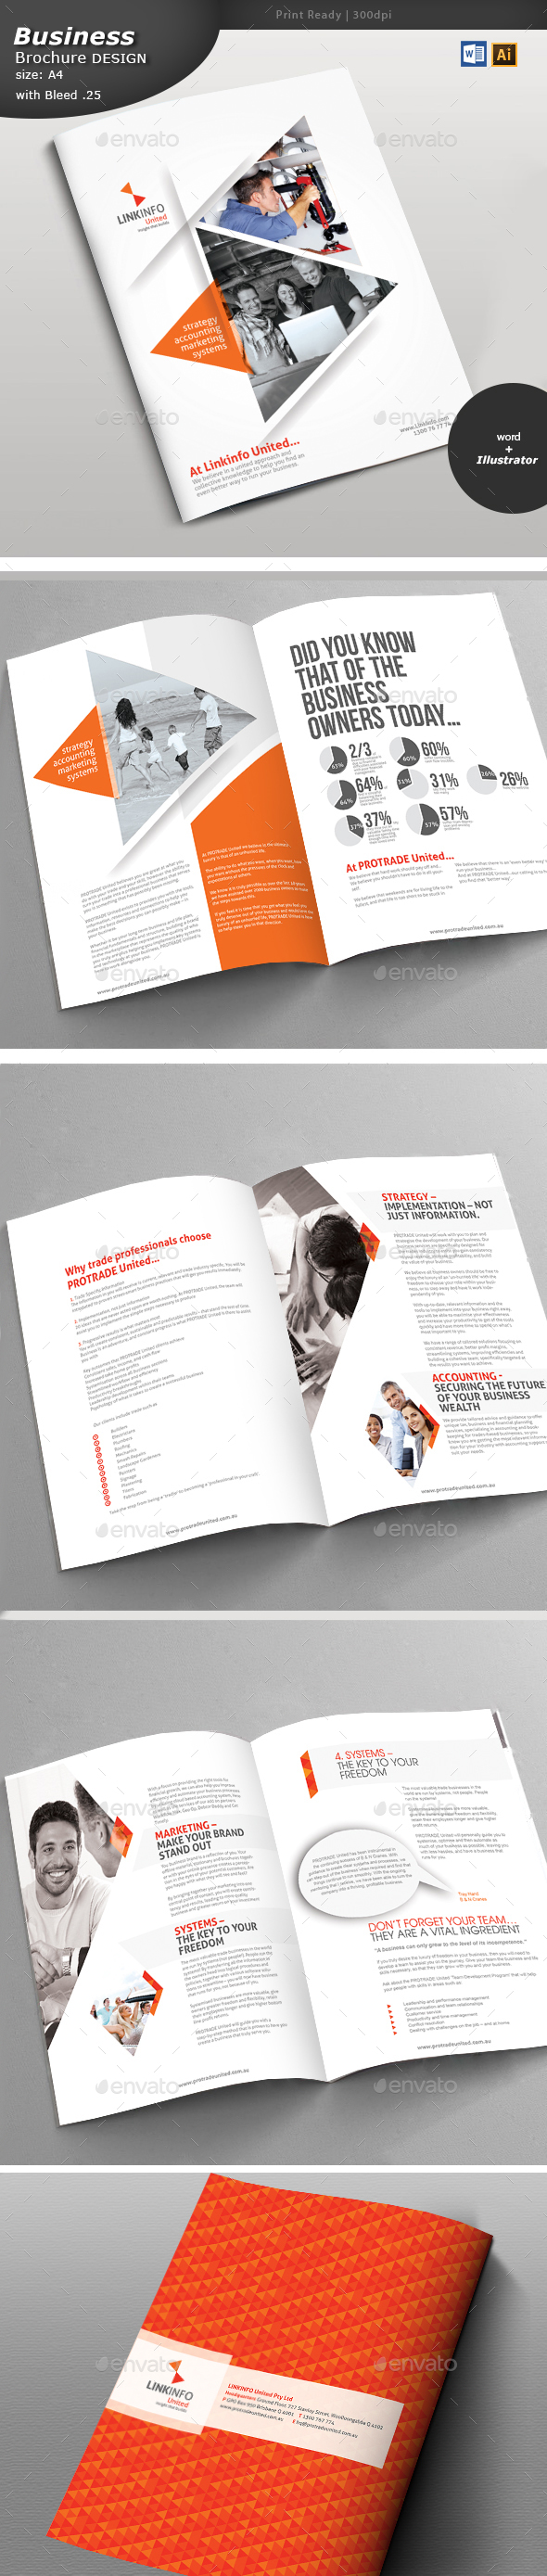 Multipurpose Brochure Design  - Brochures Print Templates